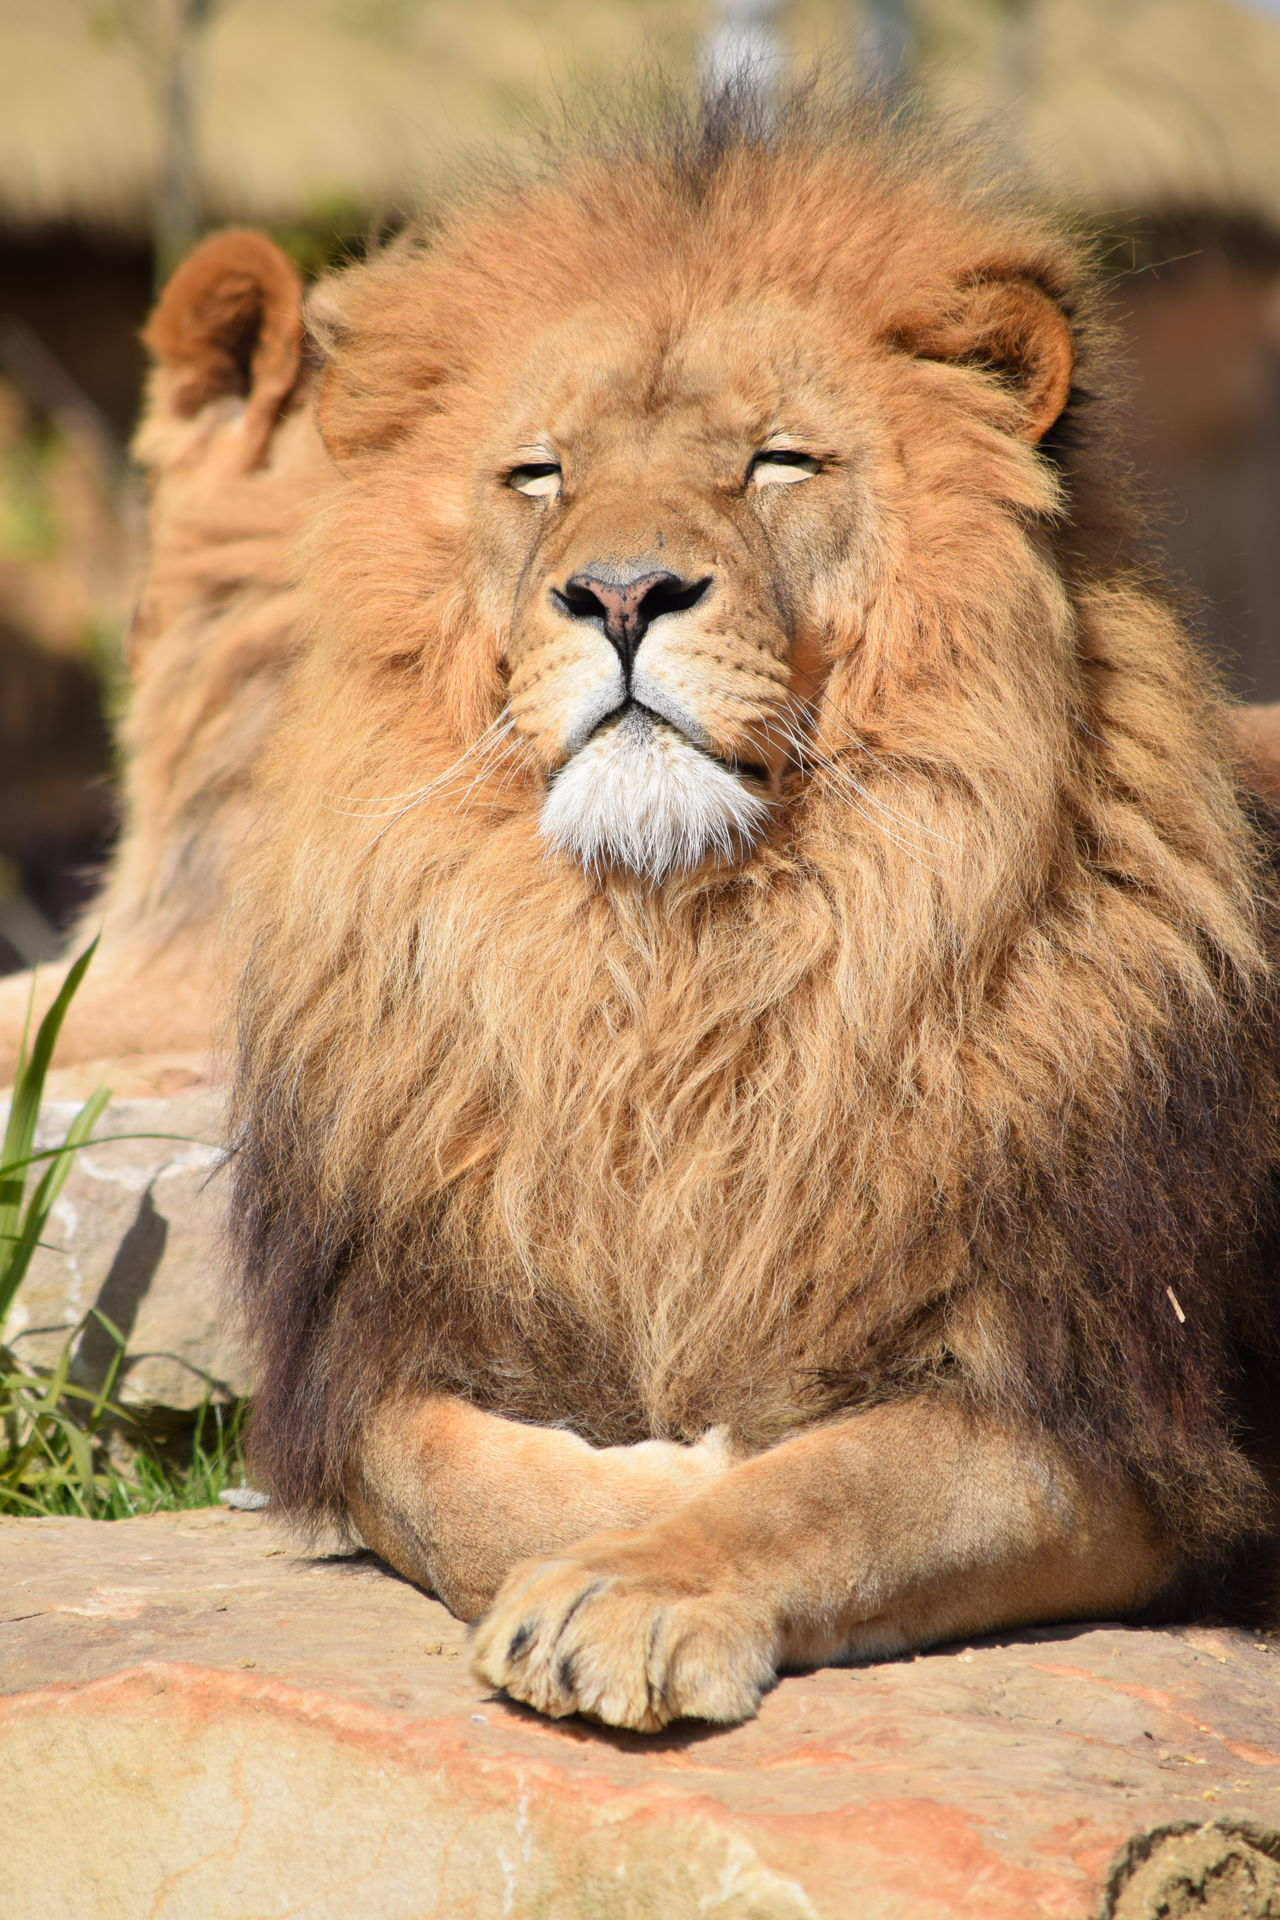 lion Beauval Feline King Lion Majestic Mamal Nature Powerful Rock Sleeping Strong Zoo